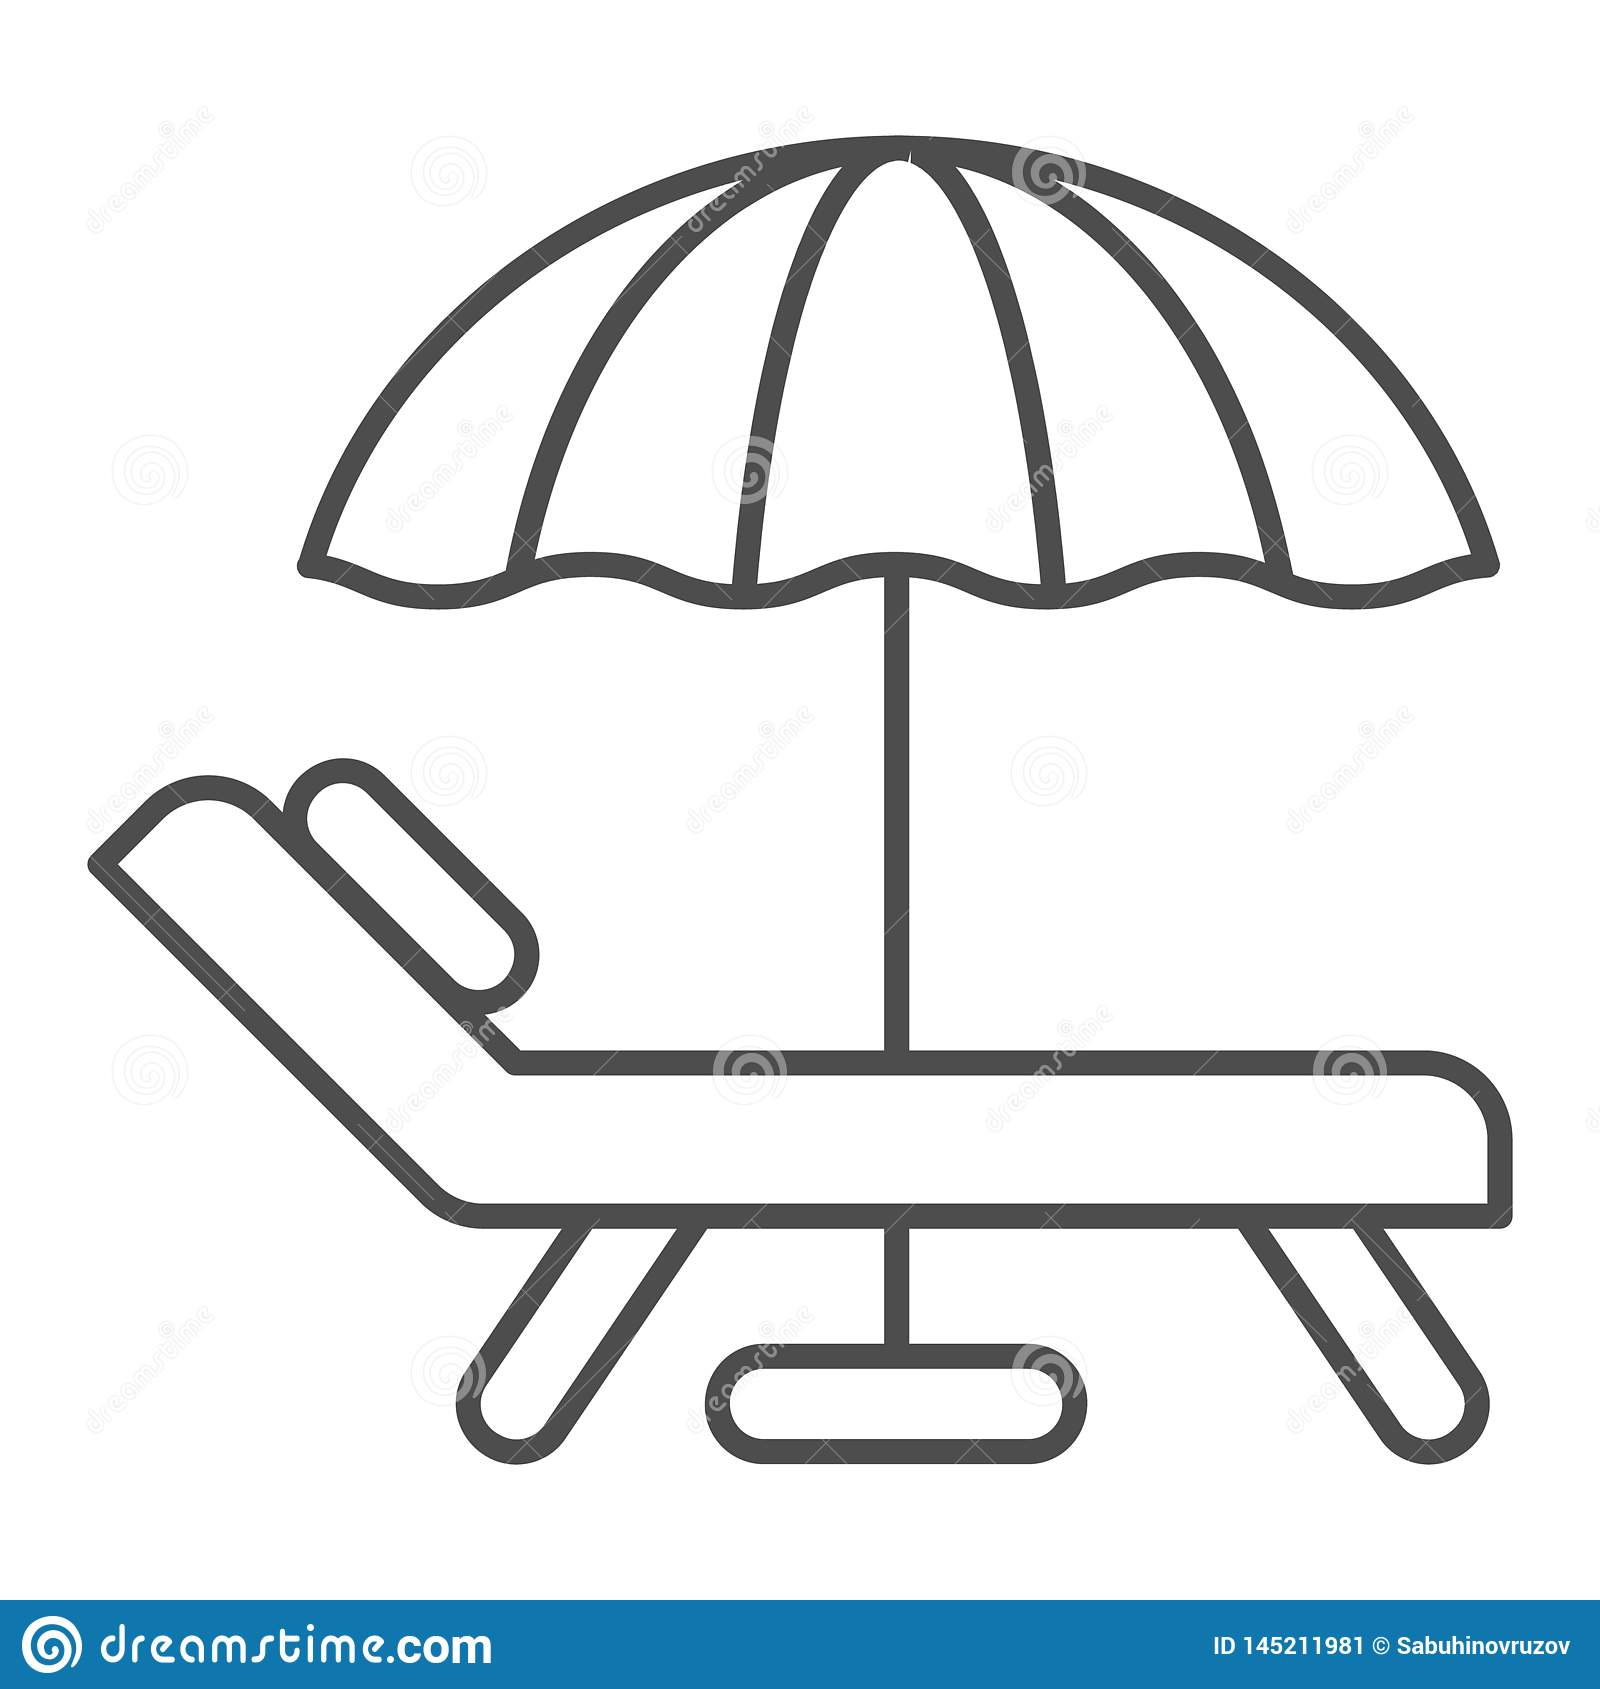 Beach umbrella and chair thin line icon. Vacation vector illustration isolated on white. Travel outline style design